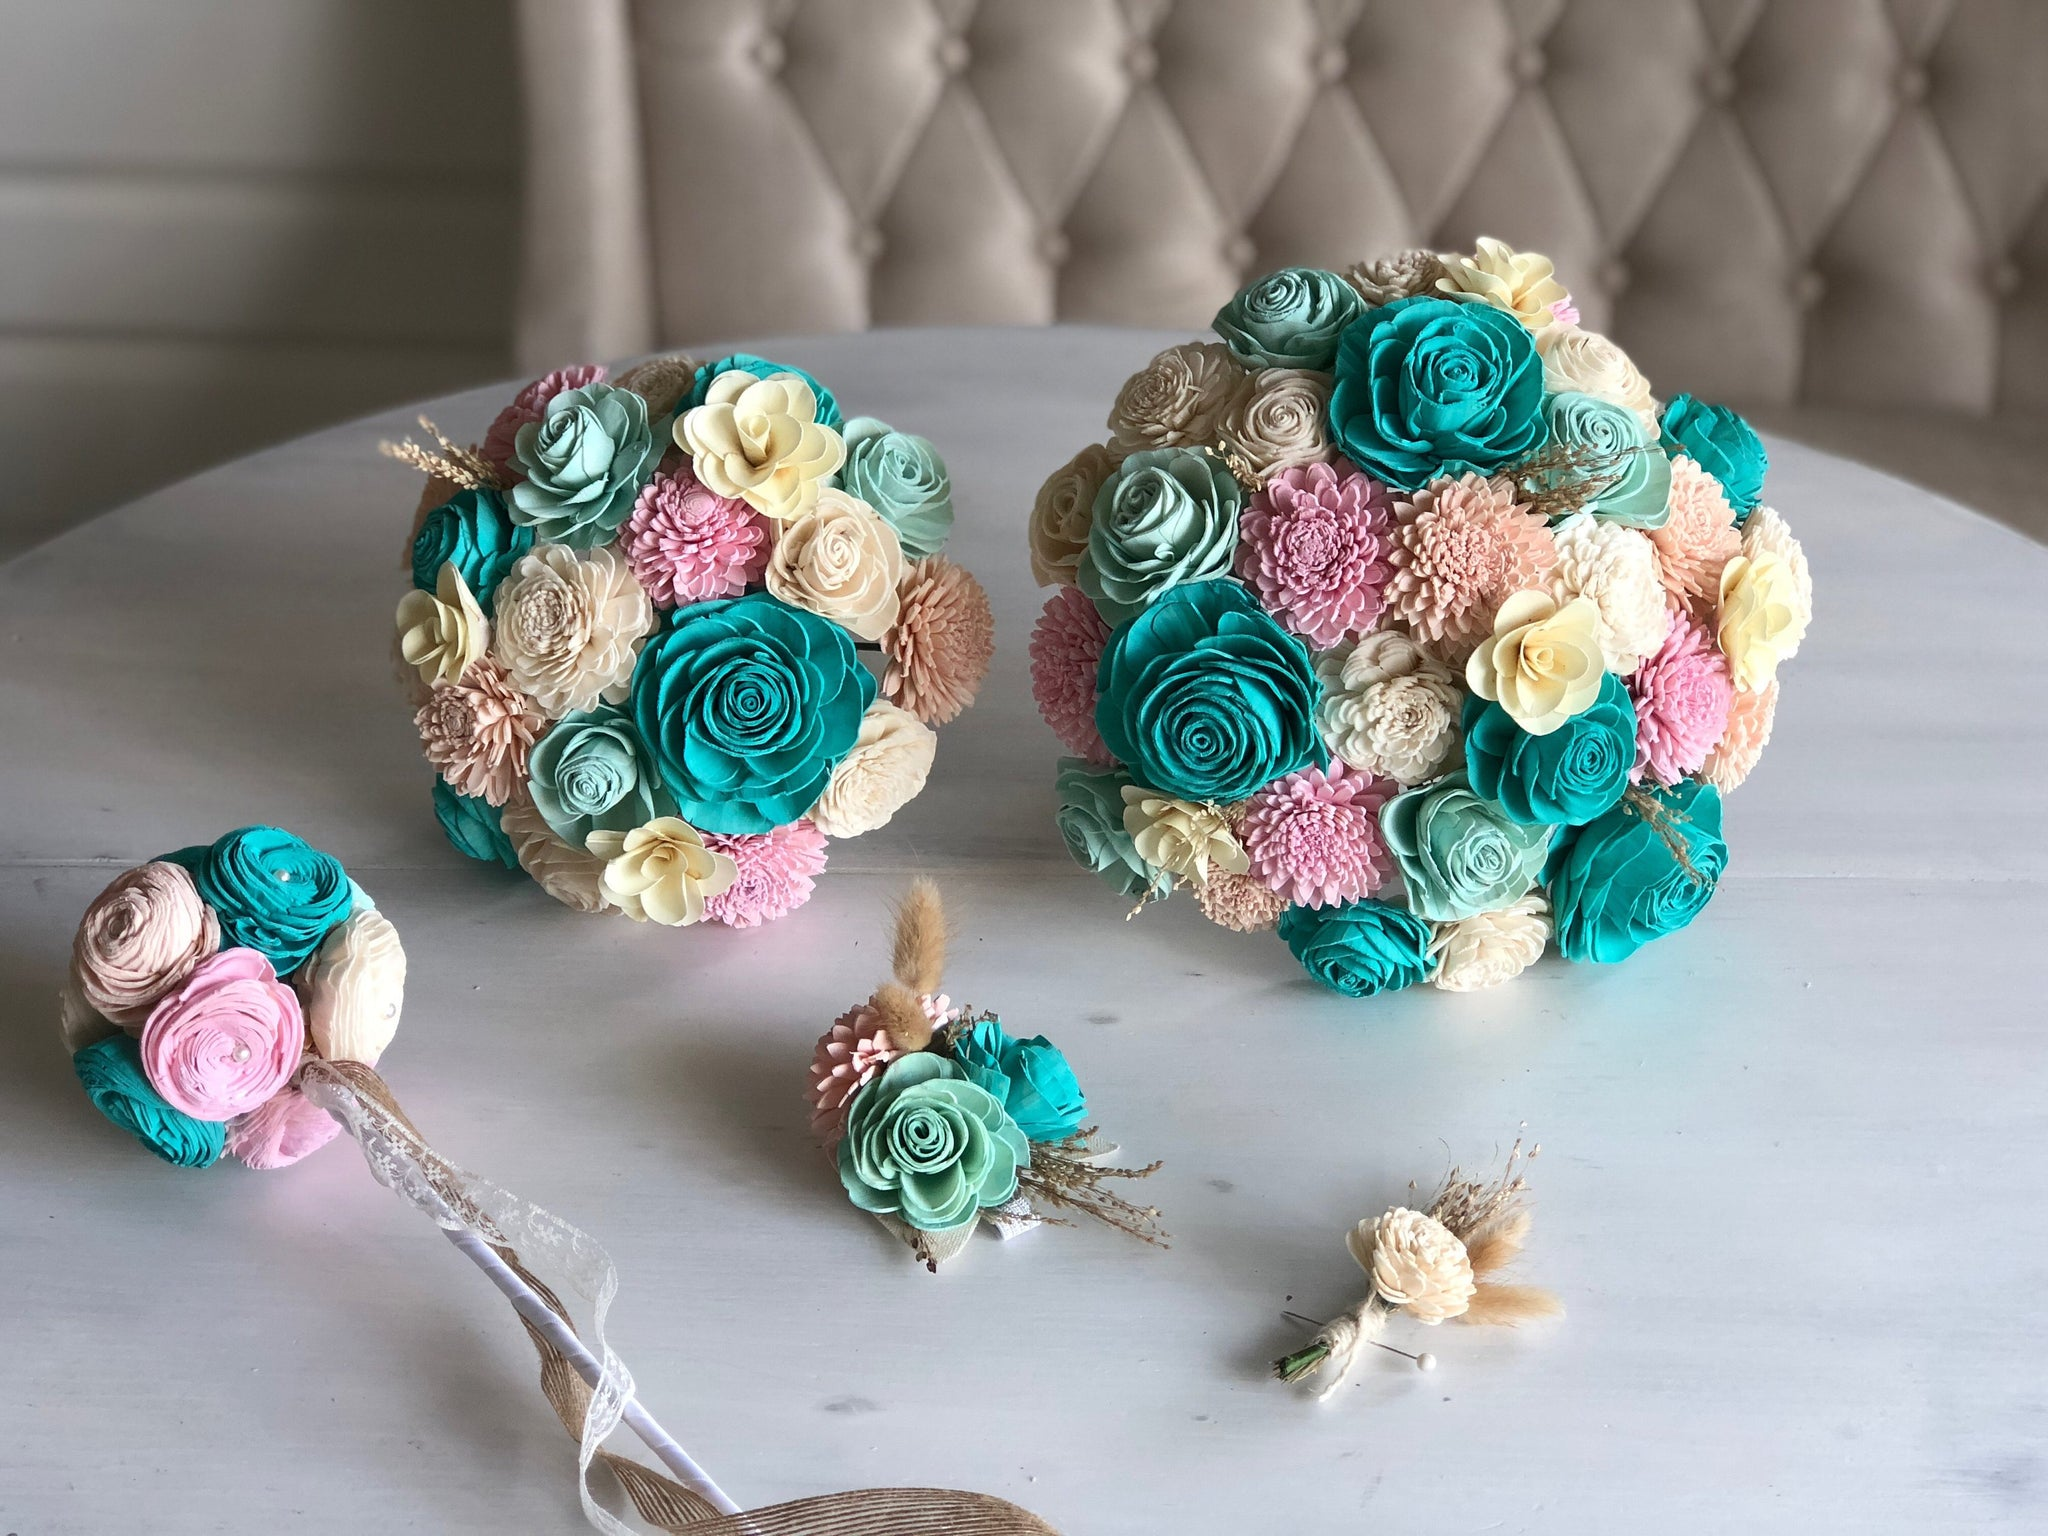 Mermaid Lagoon Bouquet - Wood Flowers - Sola Flowers - Teal, Mint, Blush, Pink -  Wedding Bouquet  - Wedding Flowers - Pine and Petal